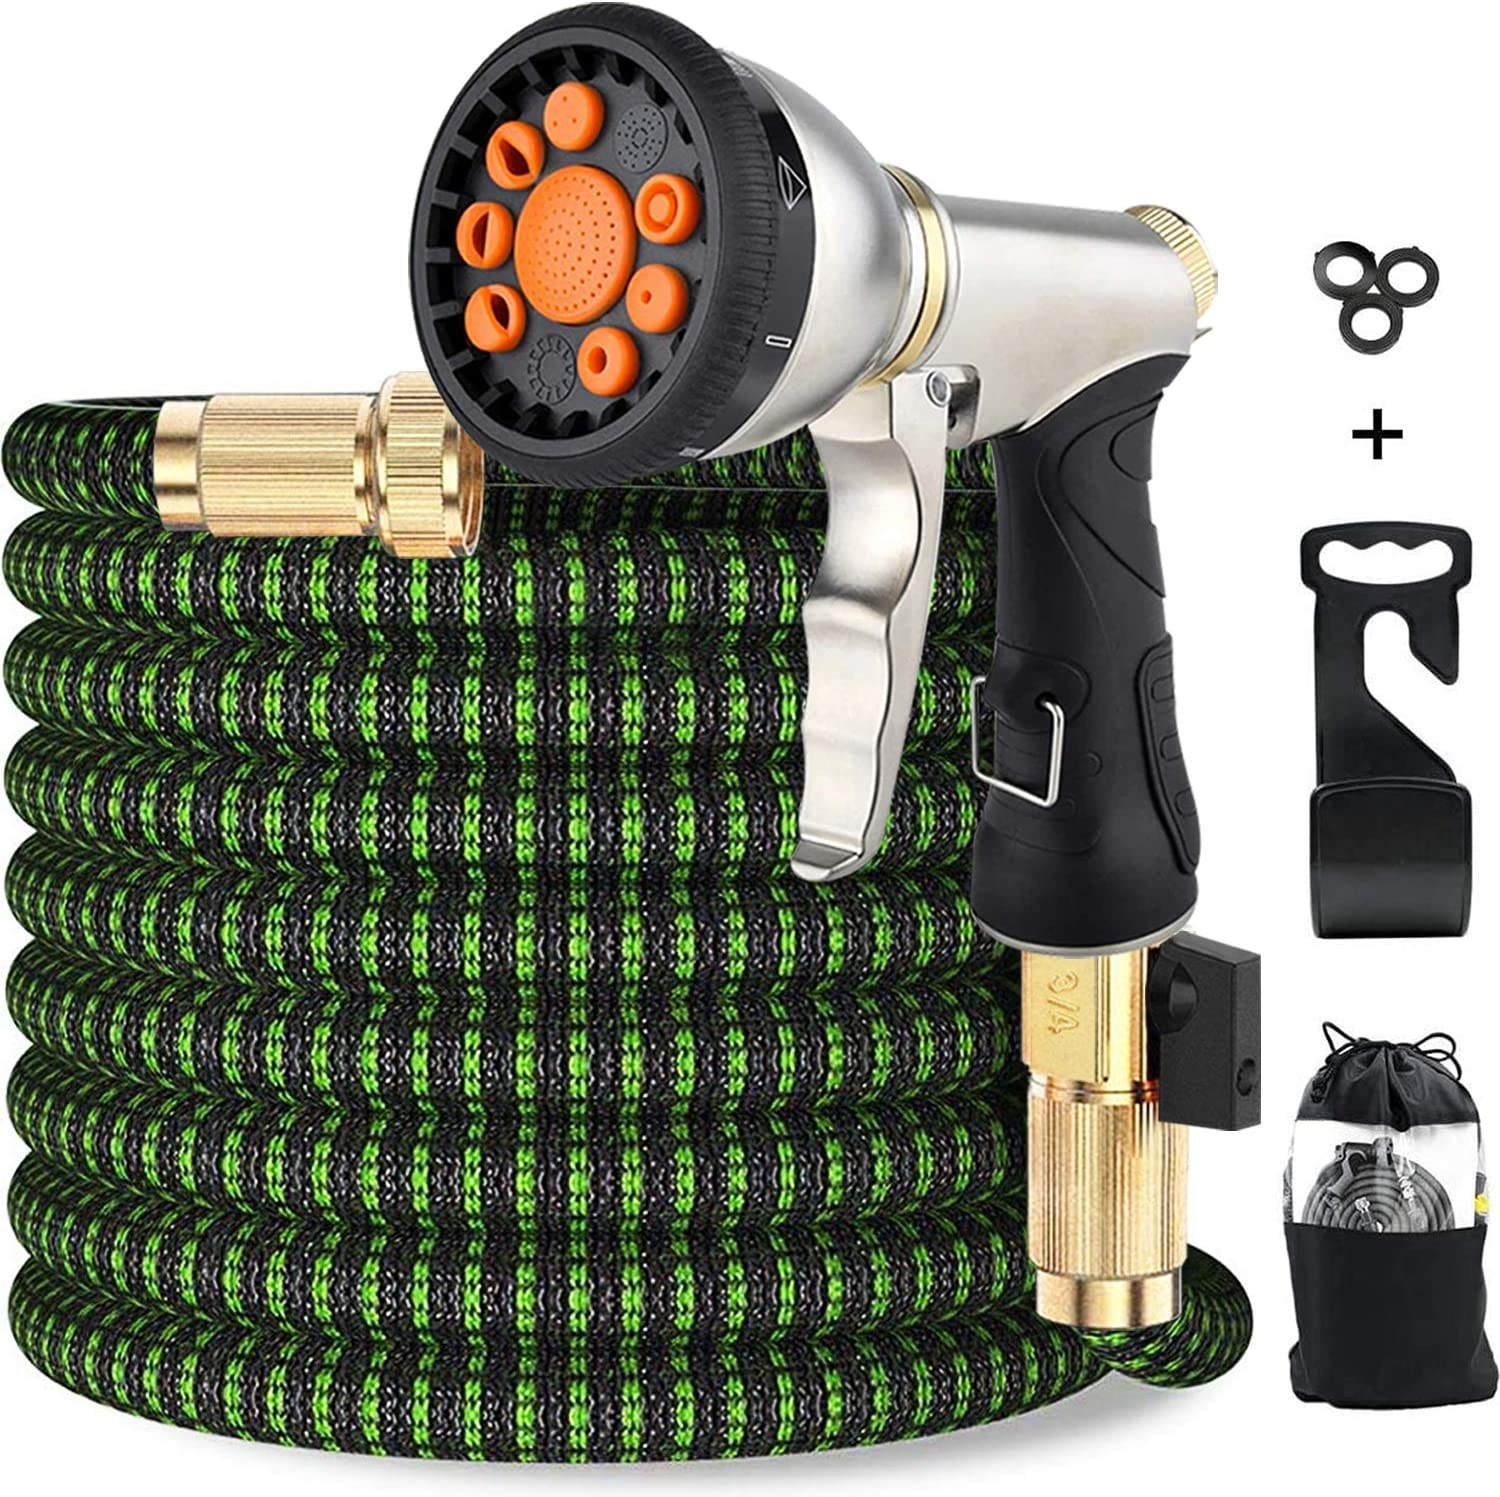 Upgraded Expandable Garden Hose 50 FT 100FT Retractable Water Hose with 4-Layers Flex Strong Latex, 3/4